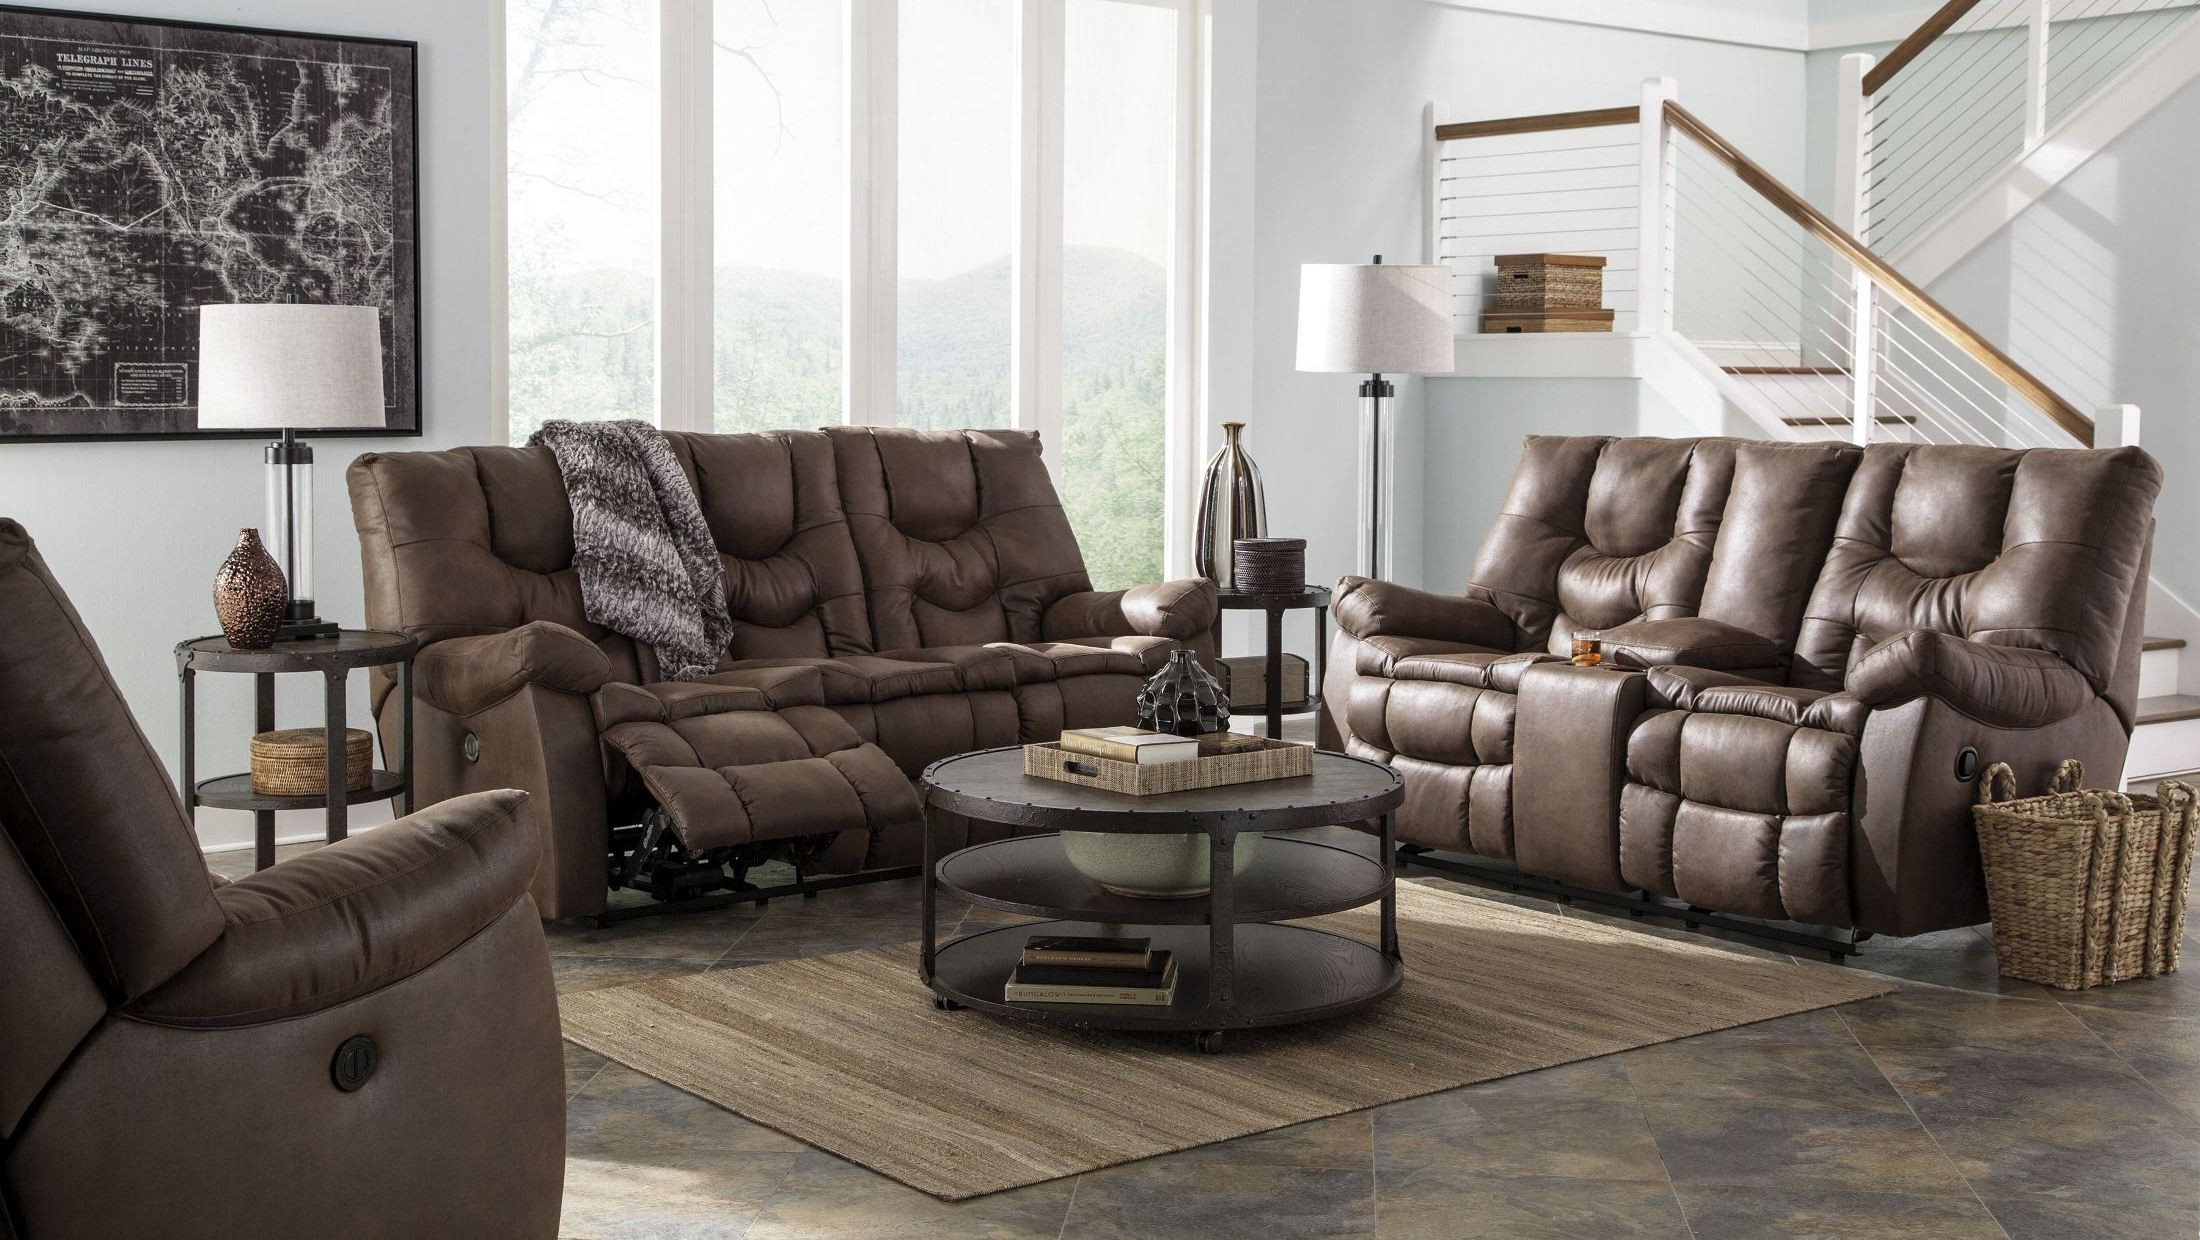 Burgett espresso reclining power reclining living room set Reclining living room furniture